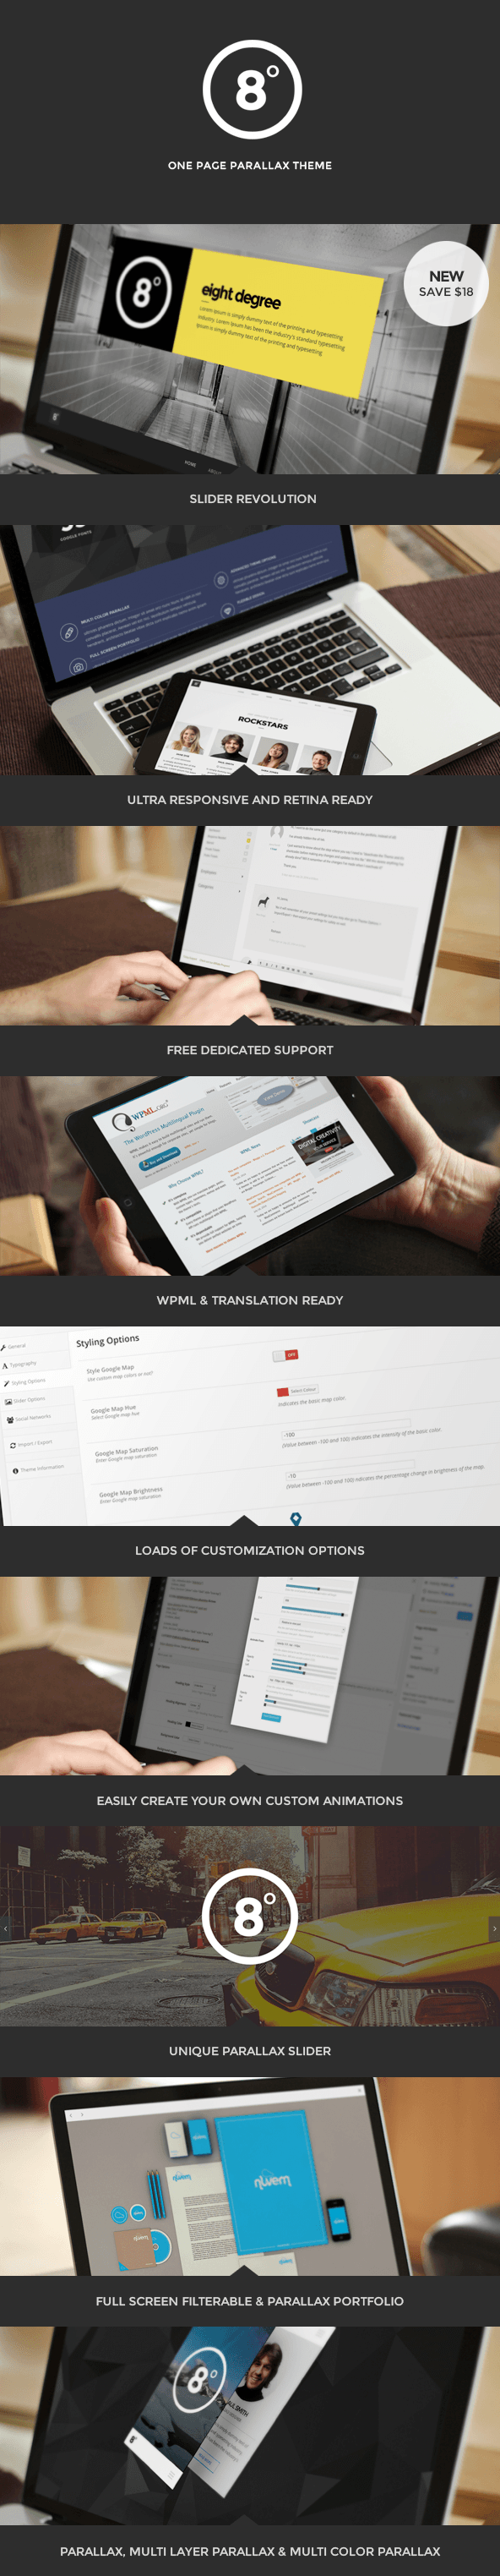 Eight Degree - One Page Parallax Theme - 1